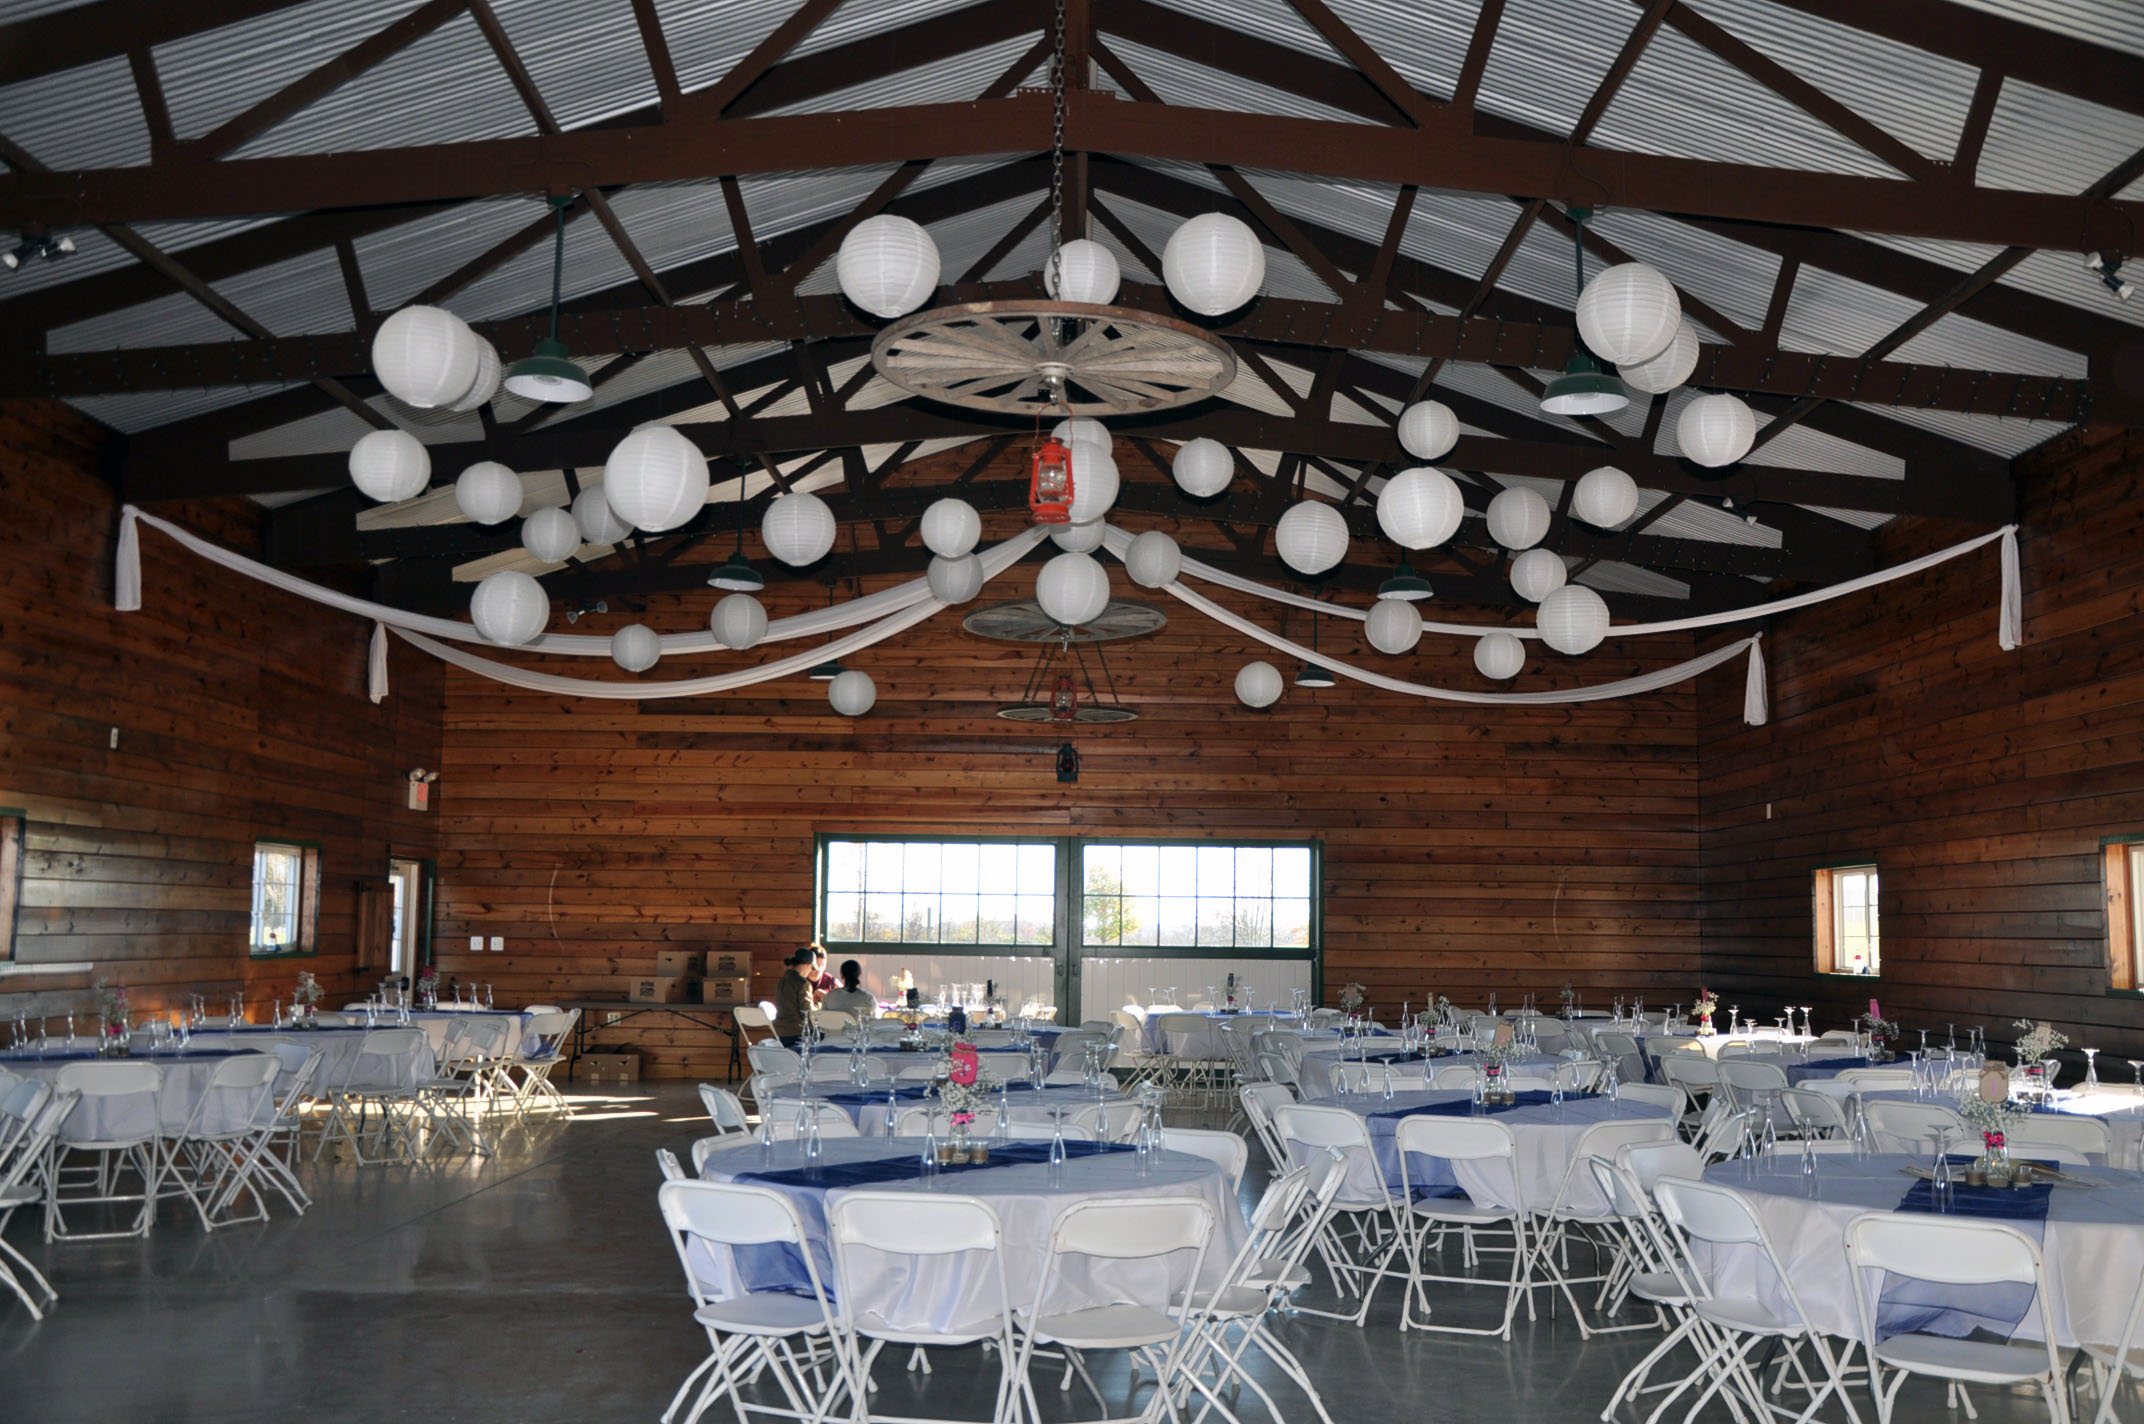 Rustic Barn Farm Wedding Venue